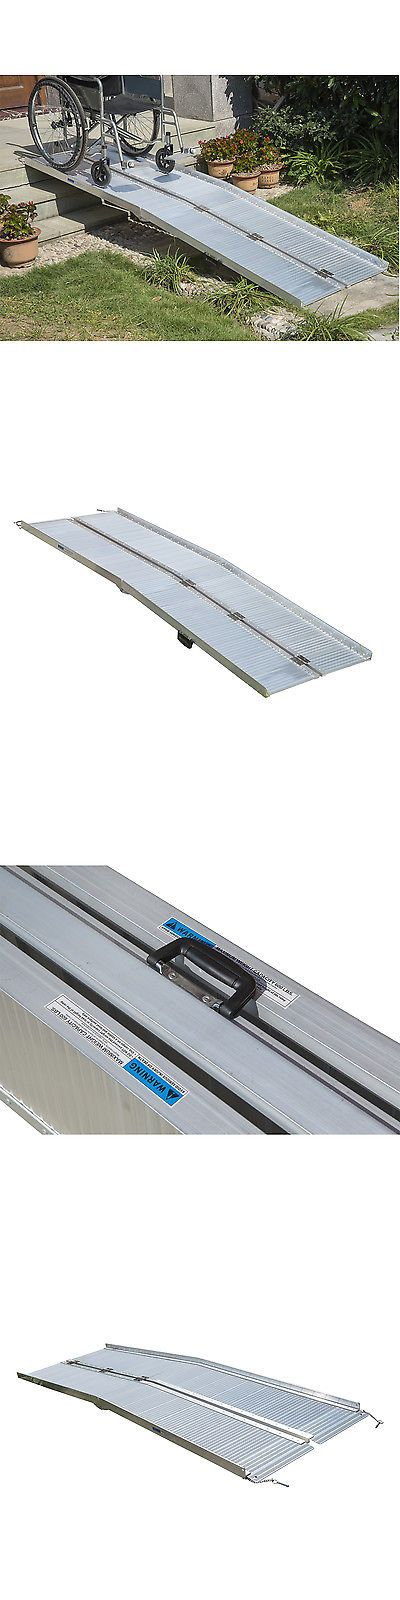 Access Ramps: Homcom 8 Folding Portable Suitcase Mobility Wheelchair Threshold Ramp BUY IT NOW ONLY: $185.7